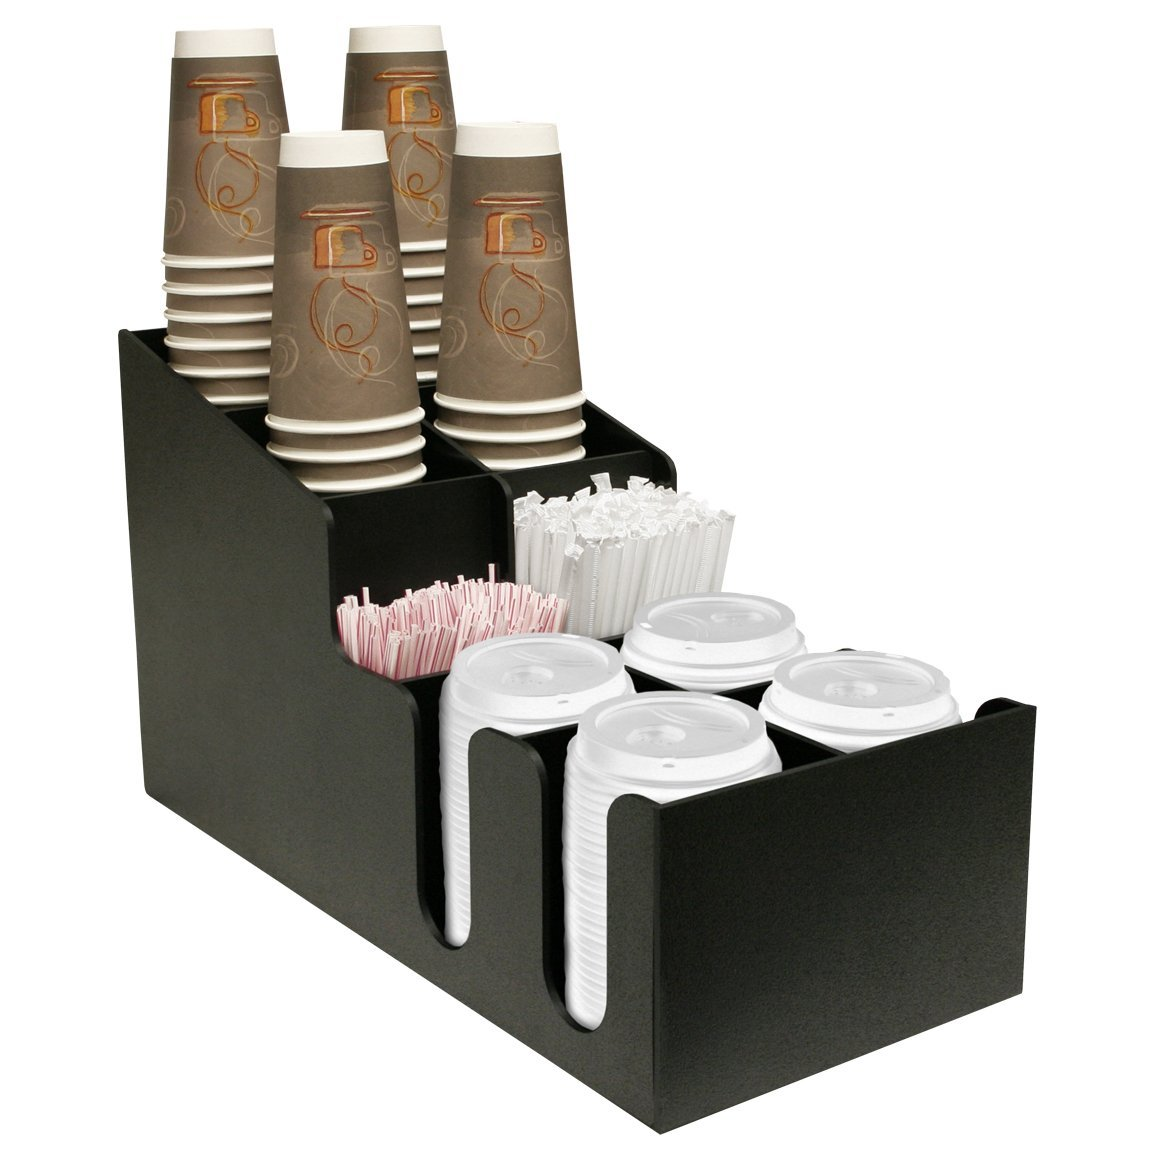 Coffee Cups, Lids and Stirrer Organizer Presentation. Holds 4 Size Coffee Cups. Made by PPM